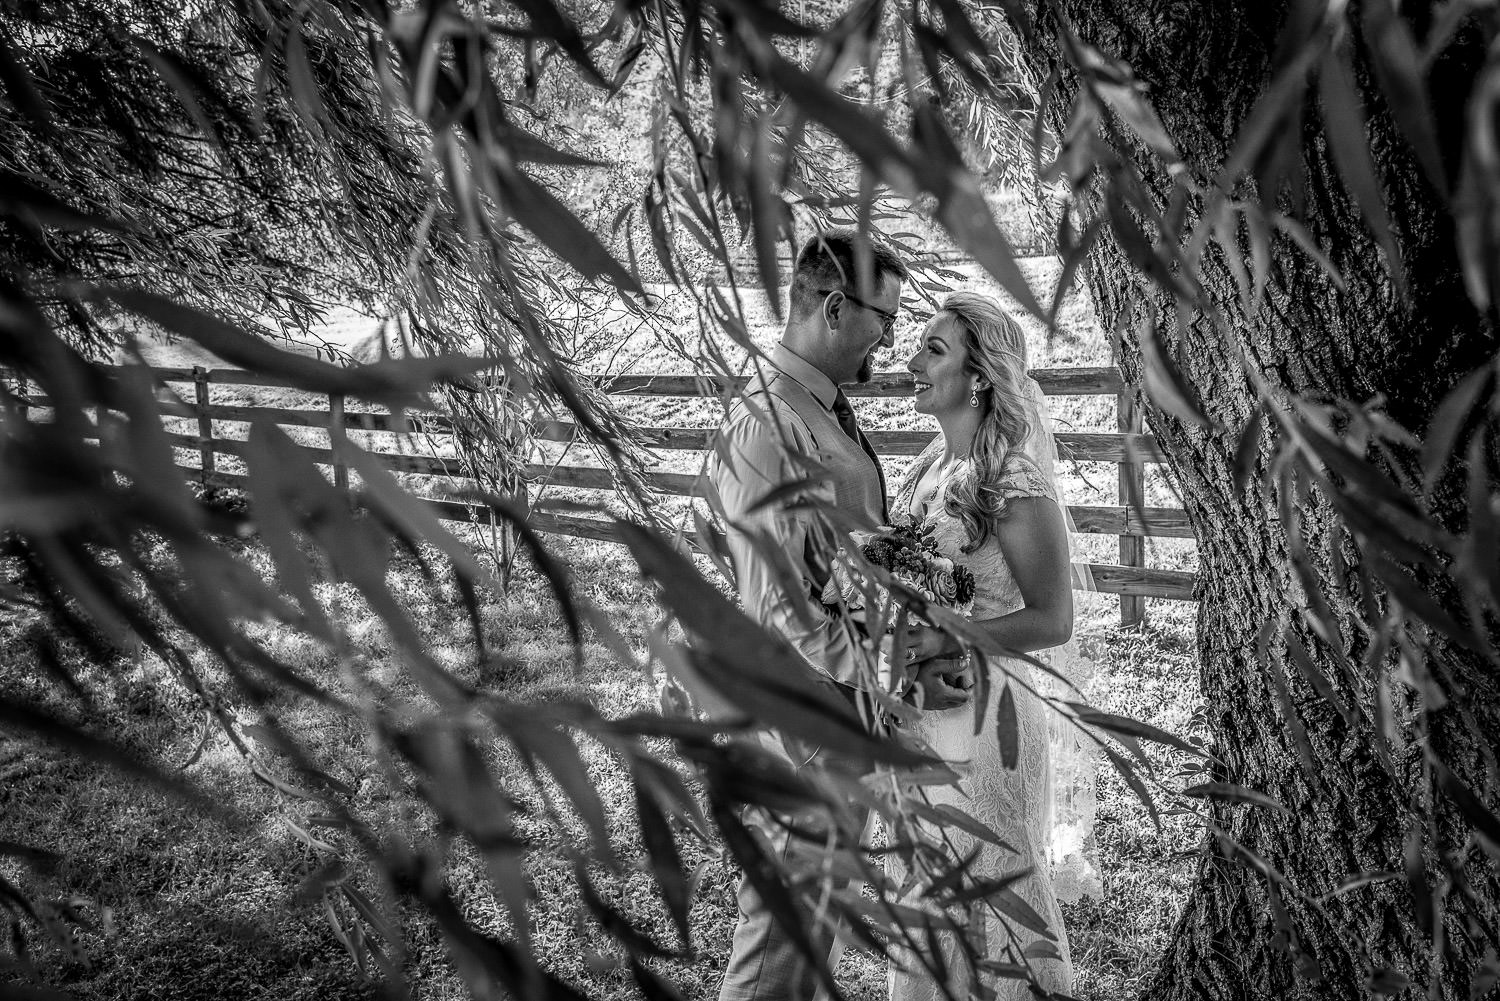 black and white portrait shot through a willow tree